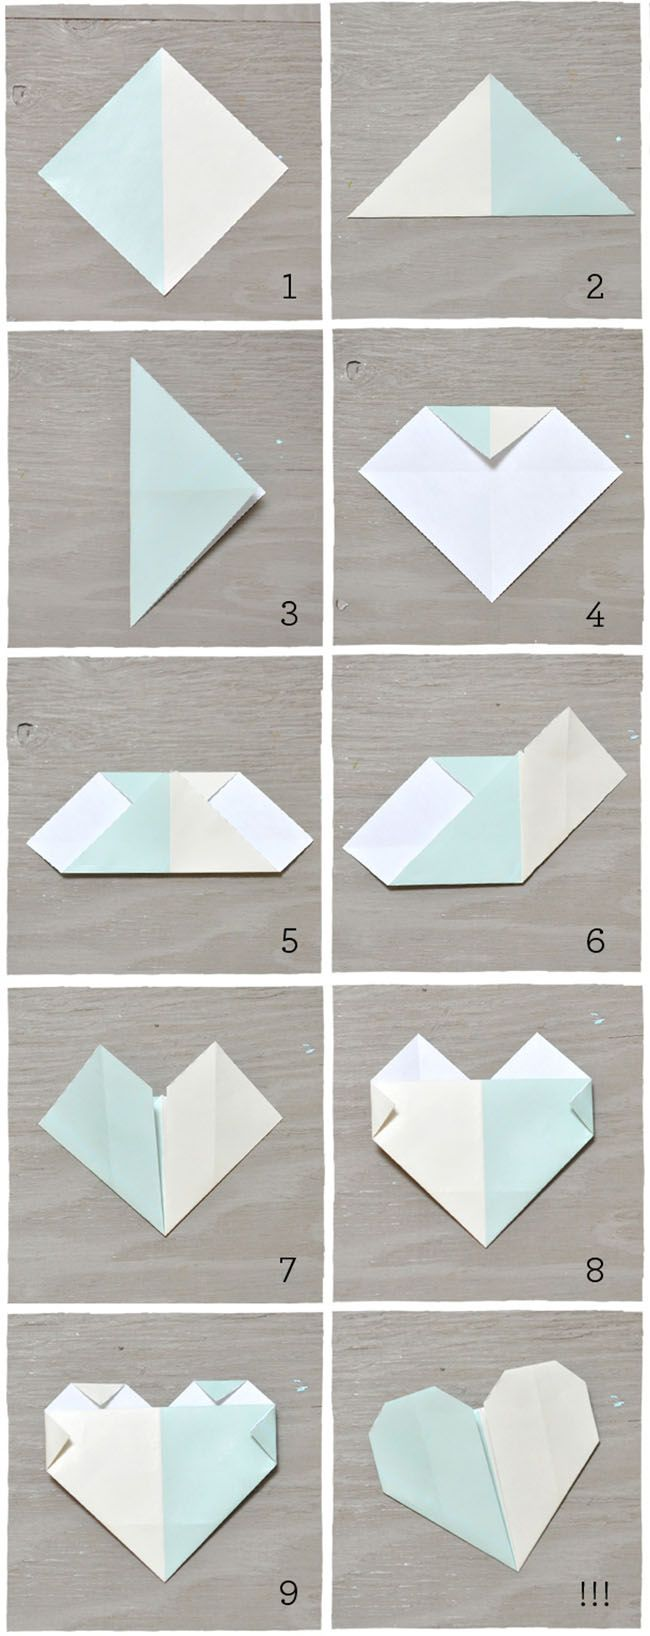 Easy origami heart. Now: make it into an ornament, glue it on a skewer for a cake topper, string several together for a banner or garland.